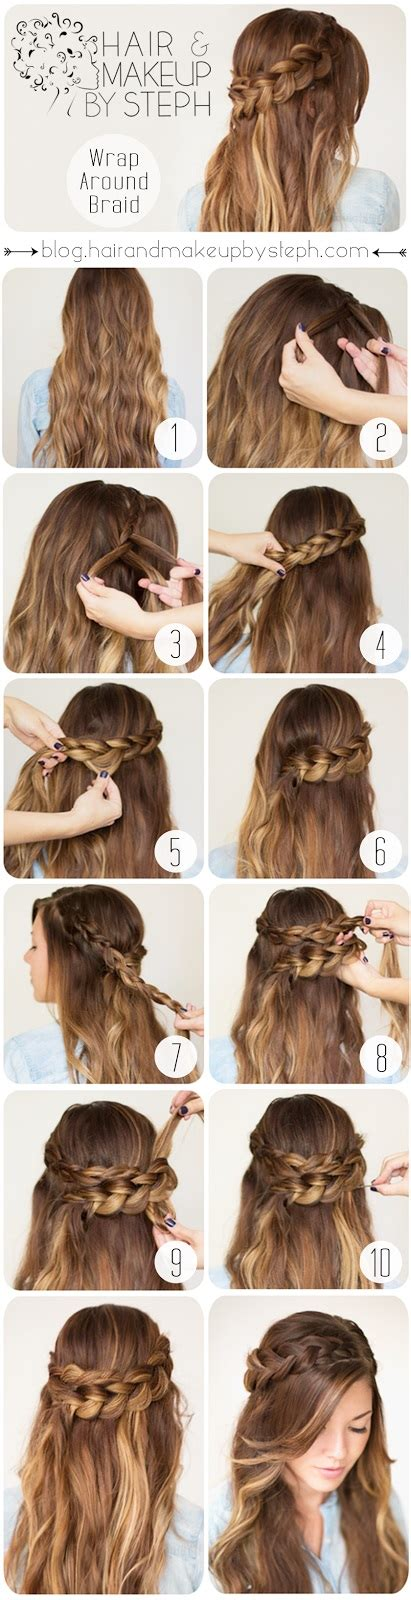 cute hairstyles how to braid hair tutorials 12 ways to braid your hair